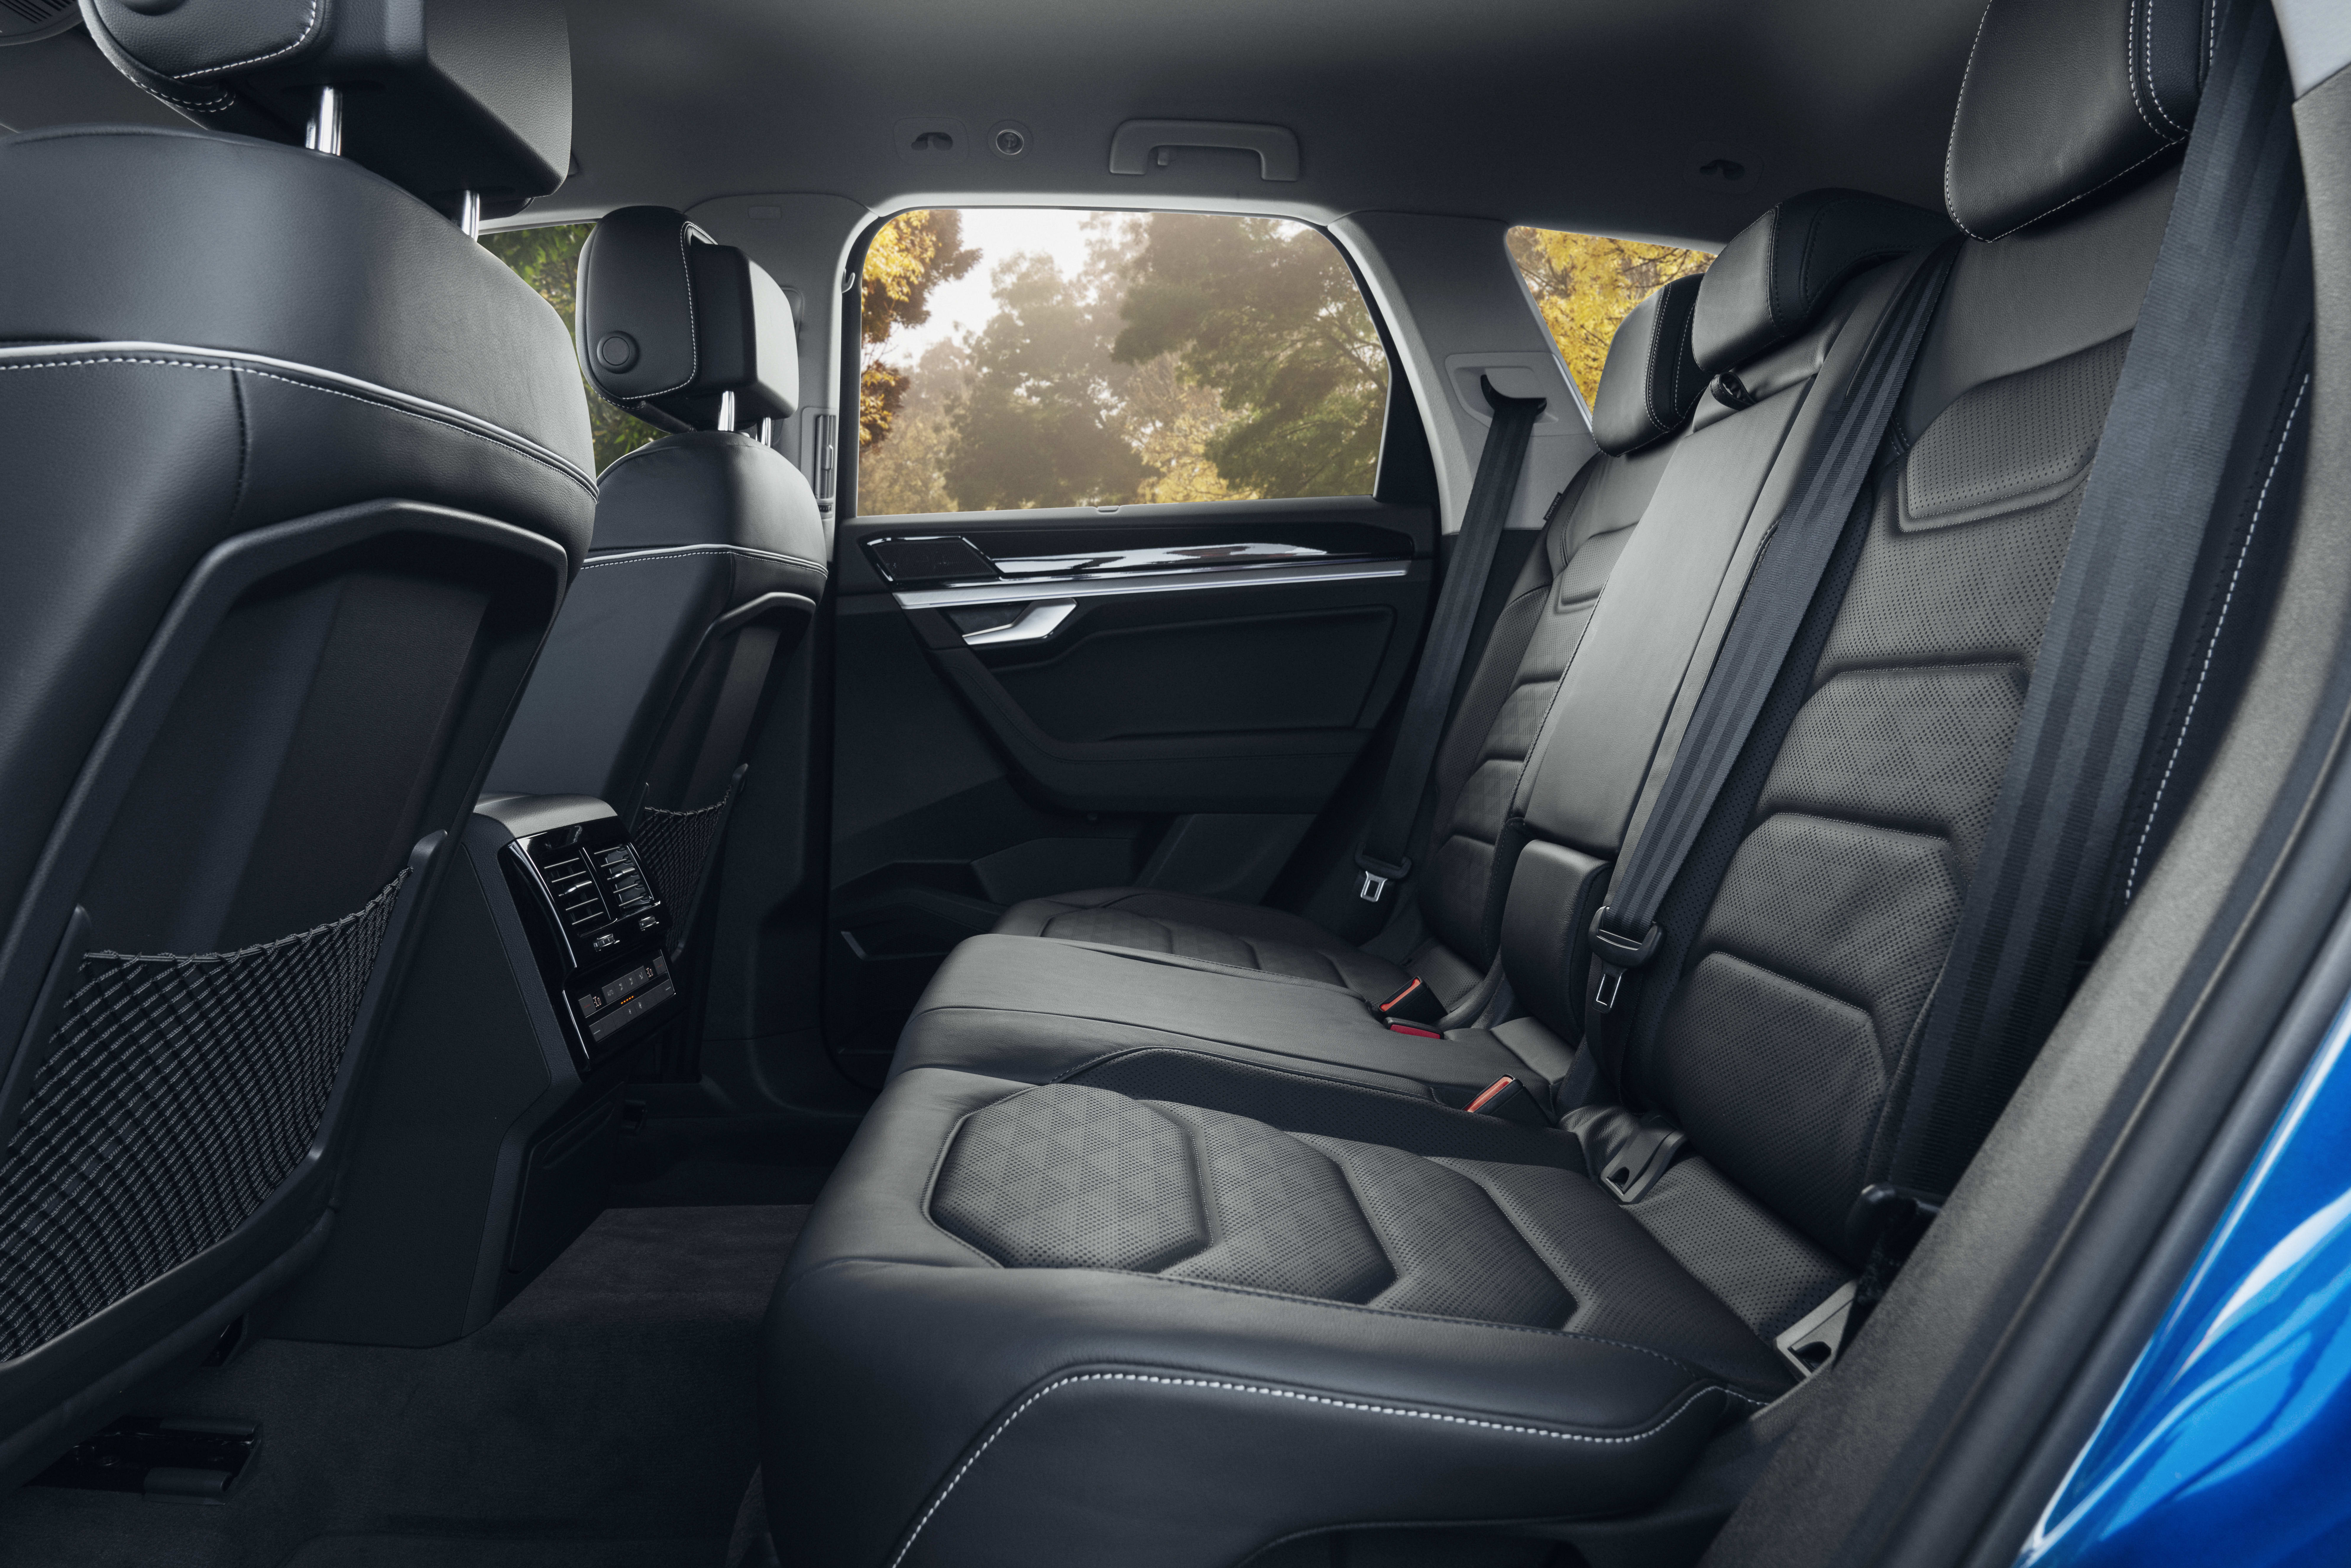 2020 Volkswagen Touareg Pricing And Specs Caradvice